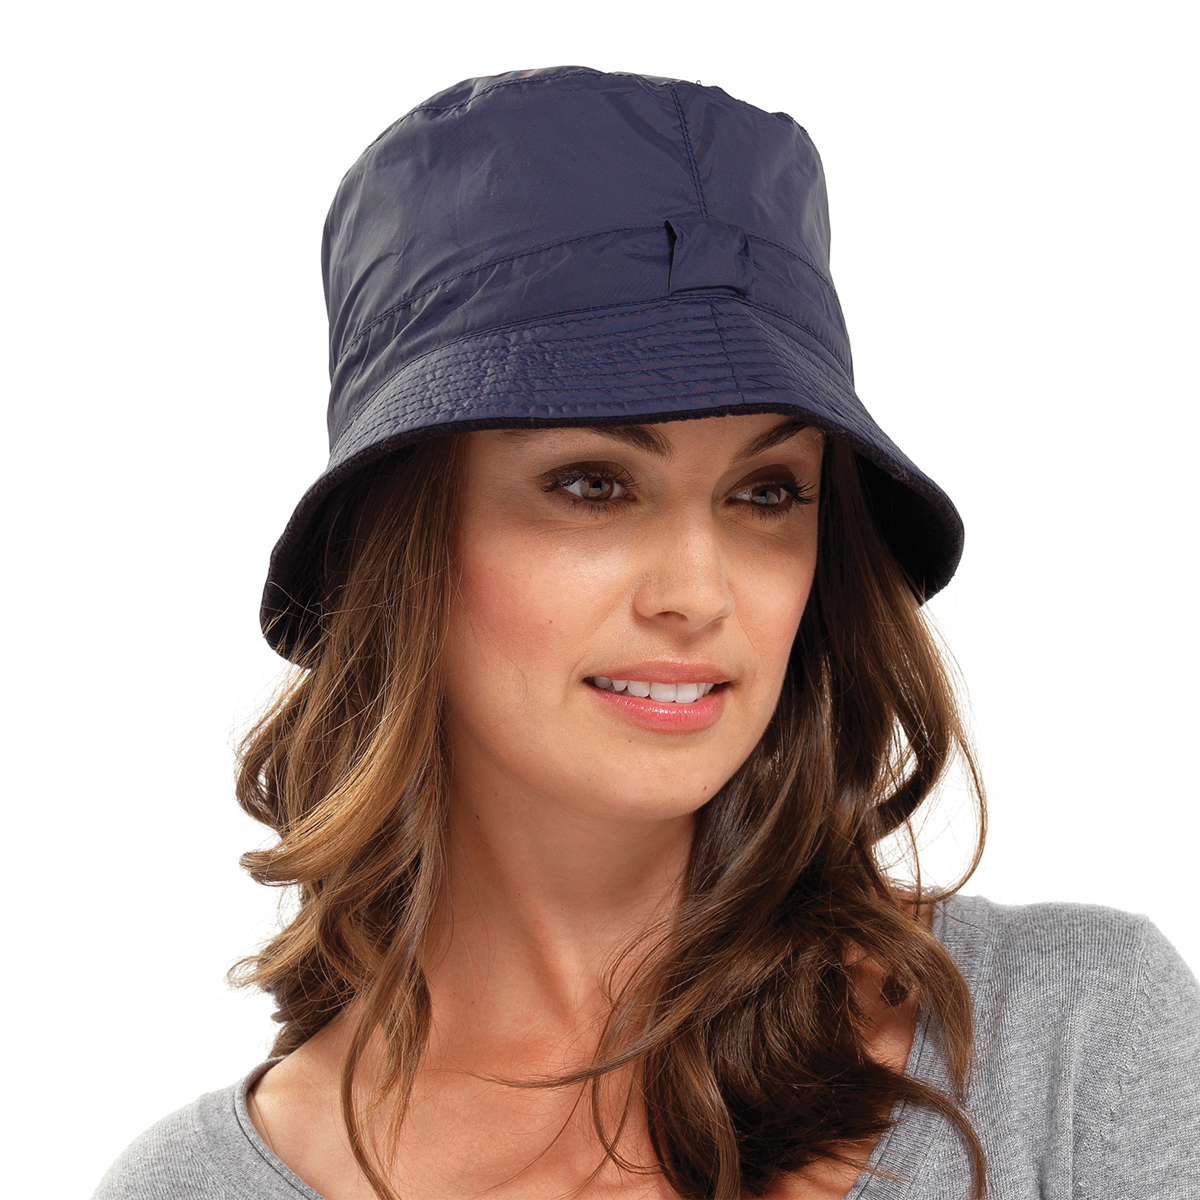 waterproof bucket hat mens womens ladies casual country